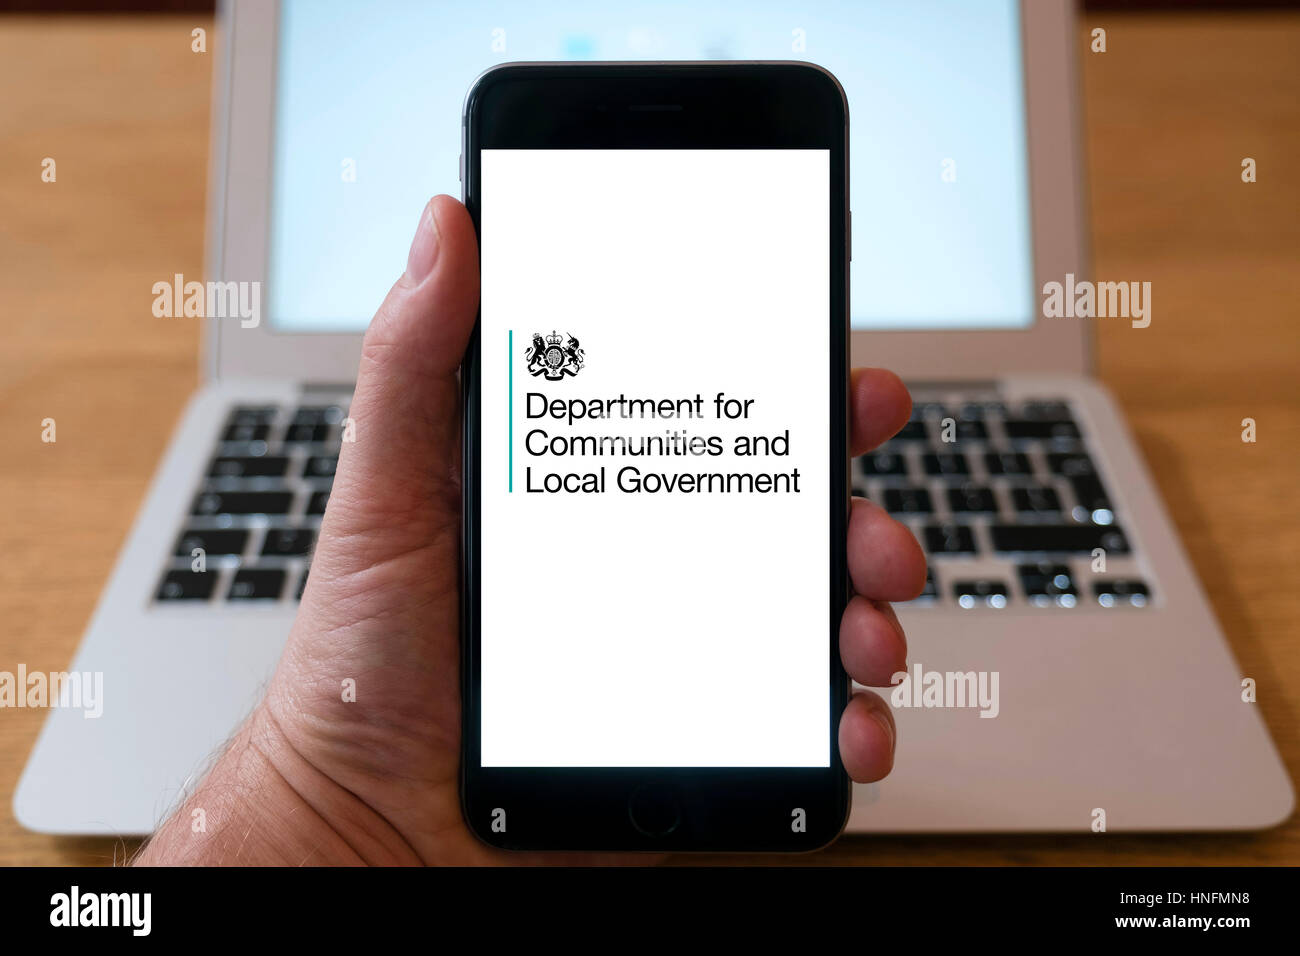 Logo for UK Government Department for Communities and Local Government on smart phone screen. - Stock Image